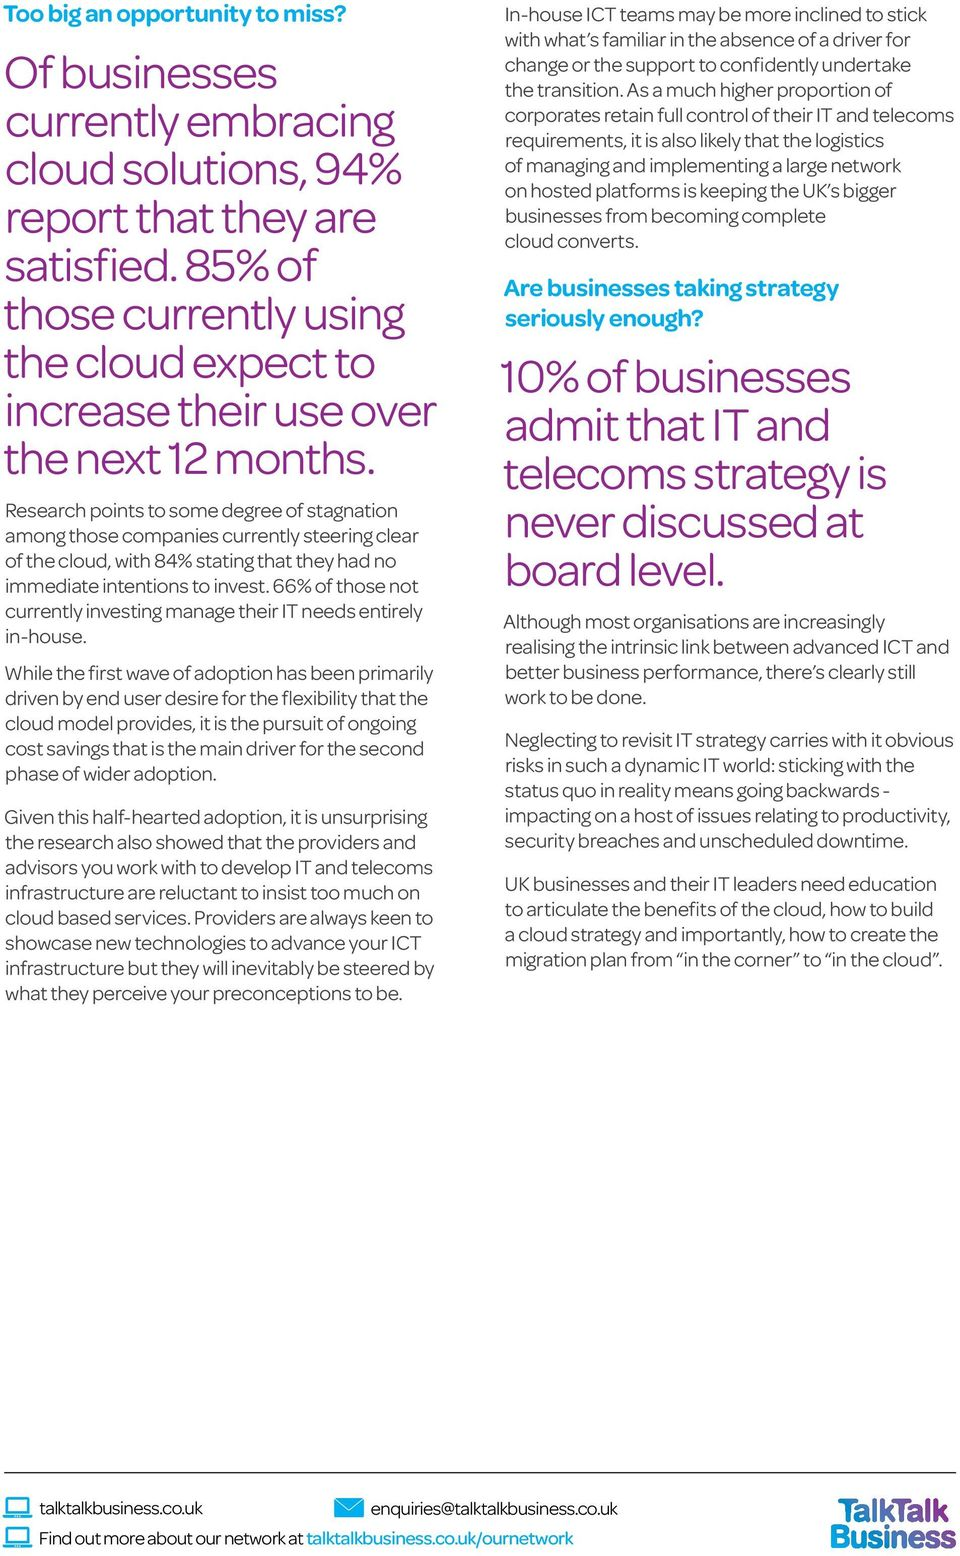 Research points to some degree of stagnation among those companies currently steering clear of the cloud, with 84% stating that they had no immediate intentions to invest.